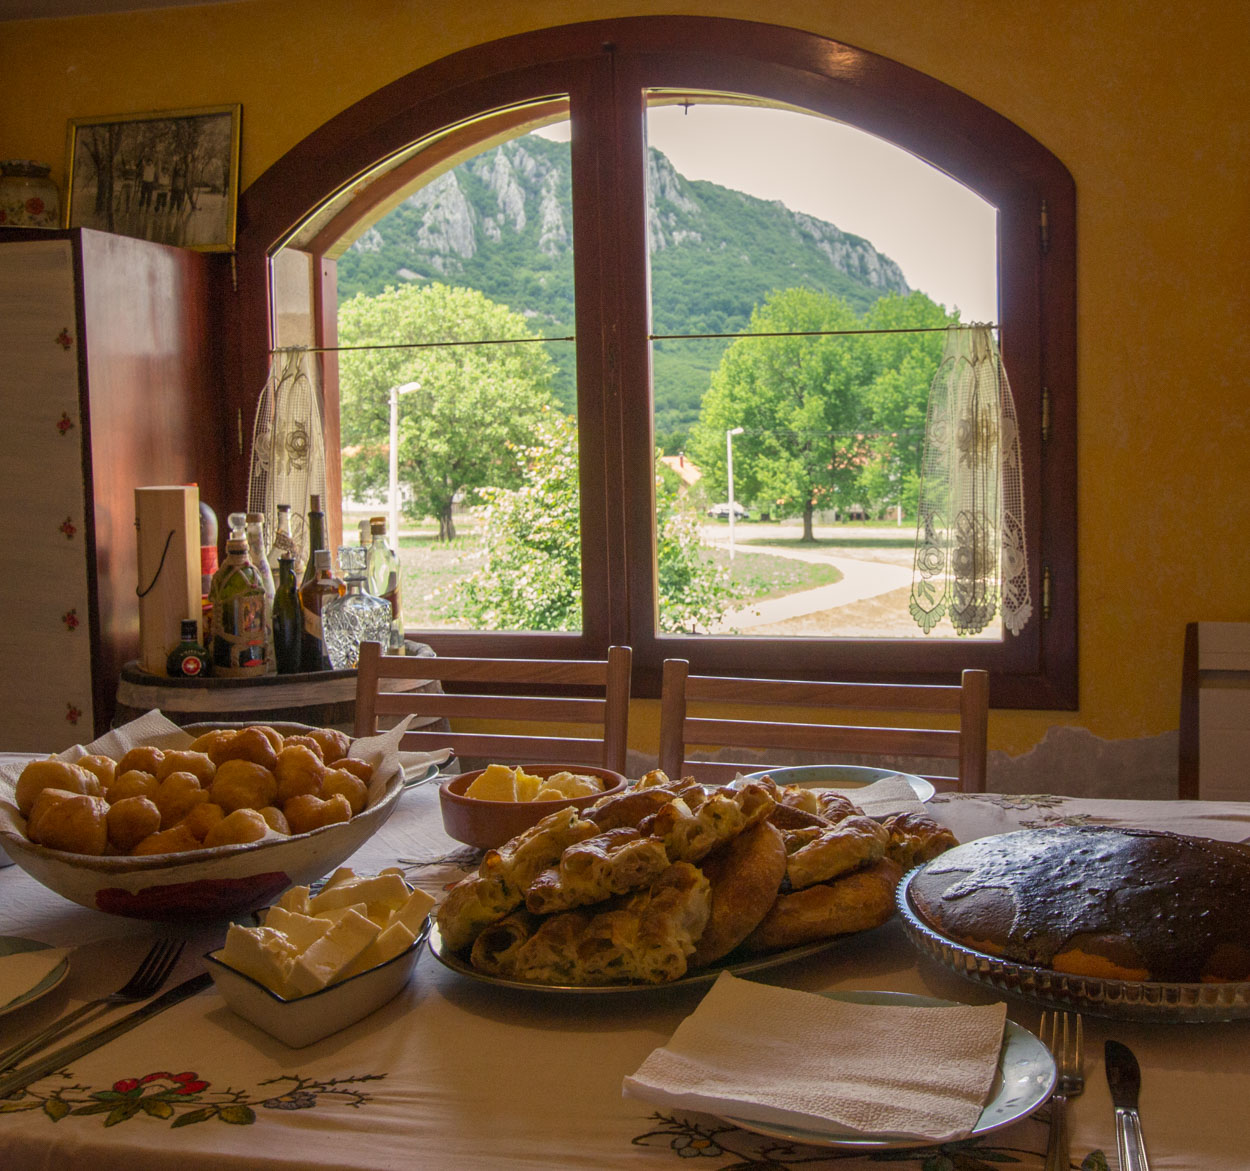 Organic traditional foods with mountain view through window at Montenegro farm stay